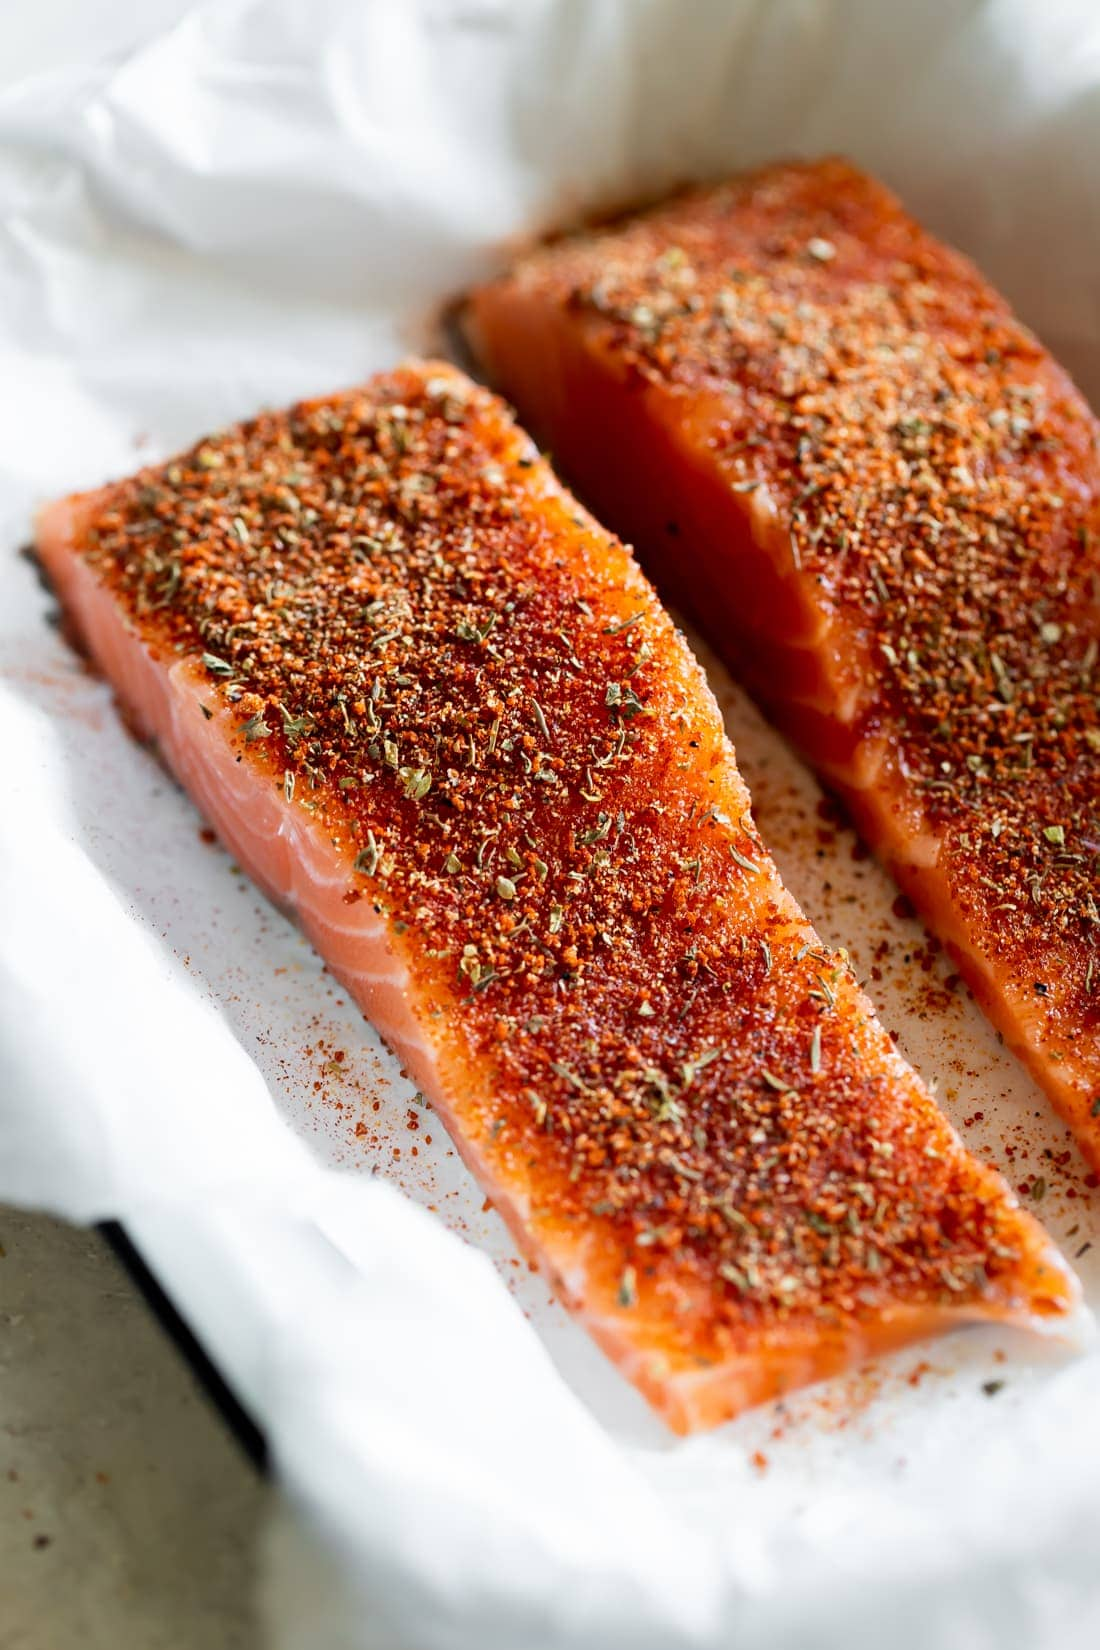 salmon with blackened seasoning on a white baking dish